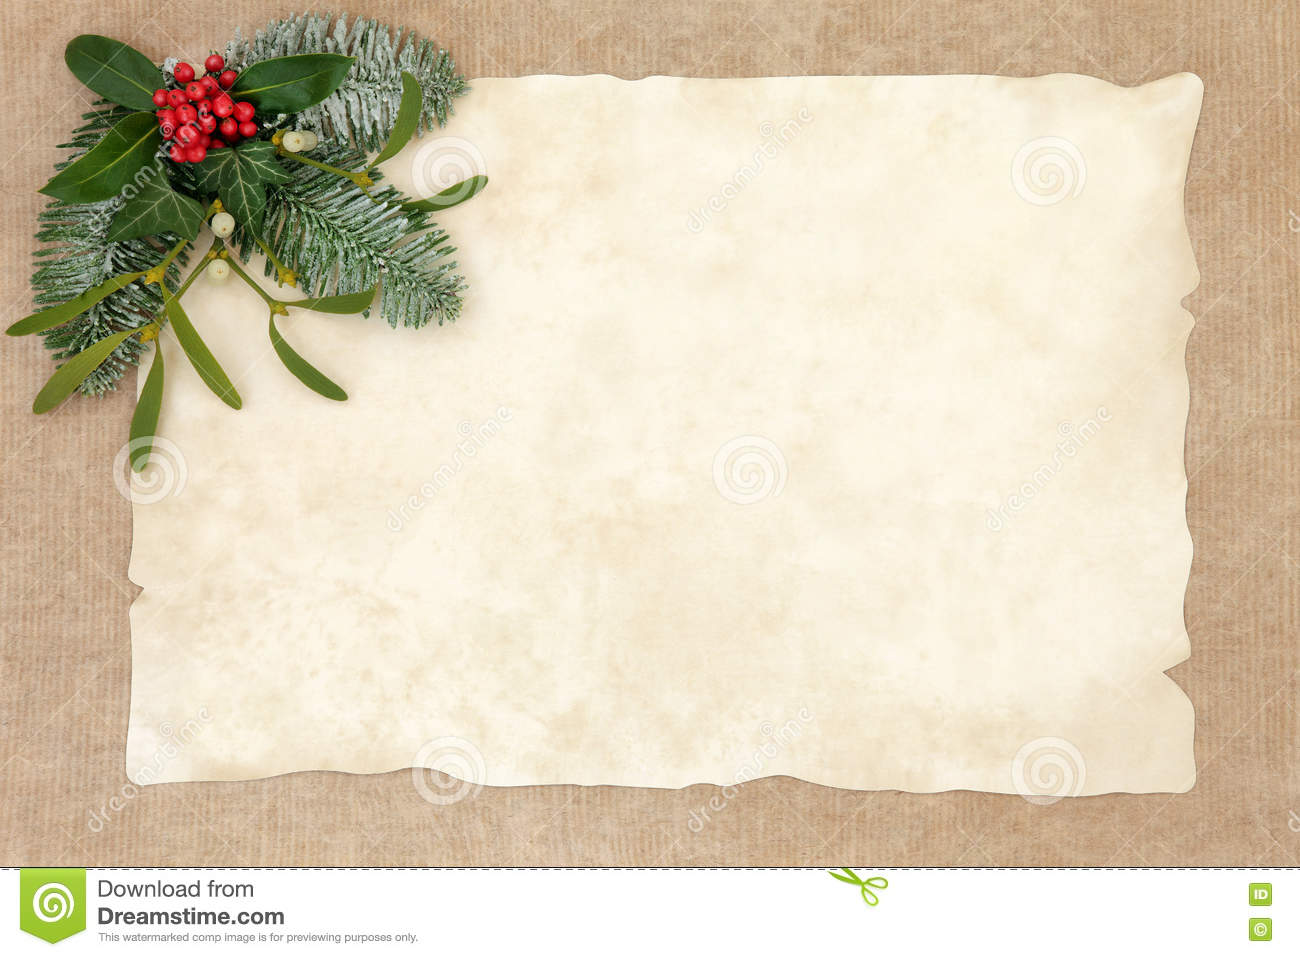 Old Fashioned Christmas Background Stock Photo - Image of noel ...